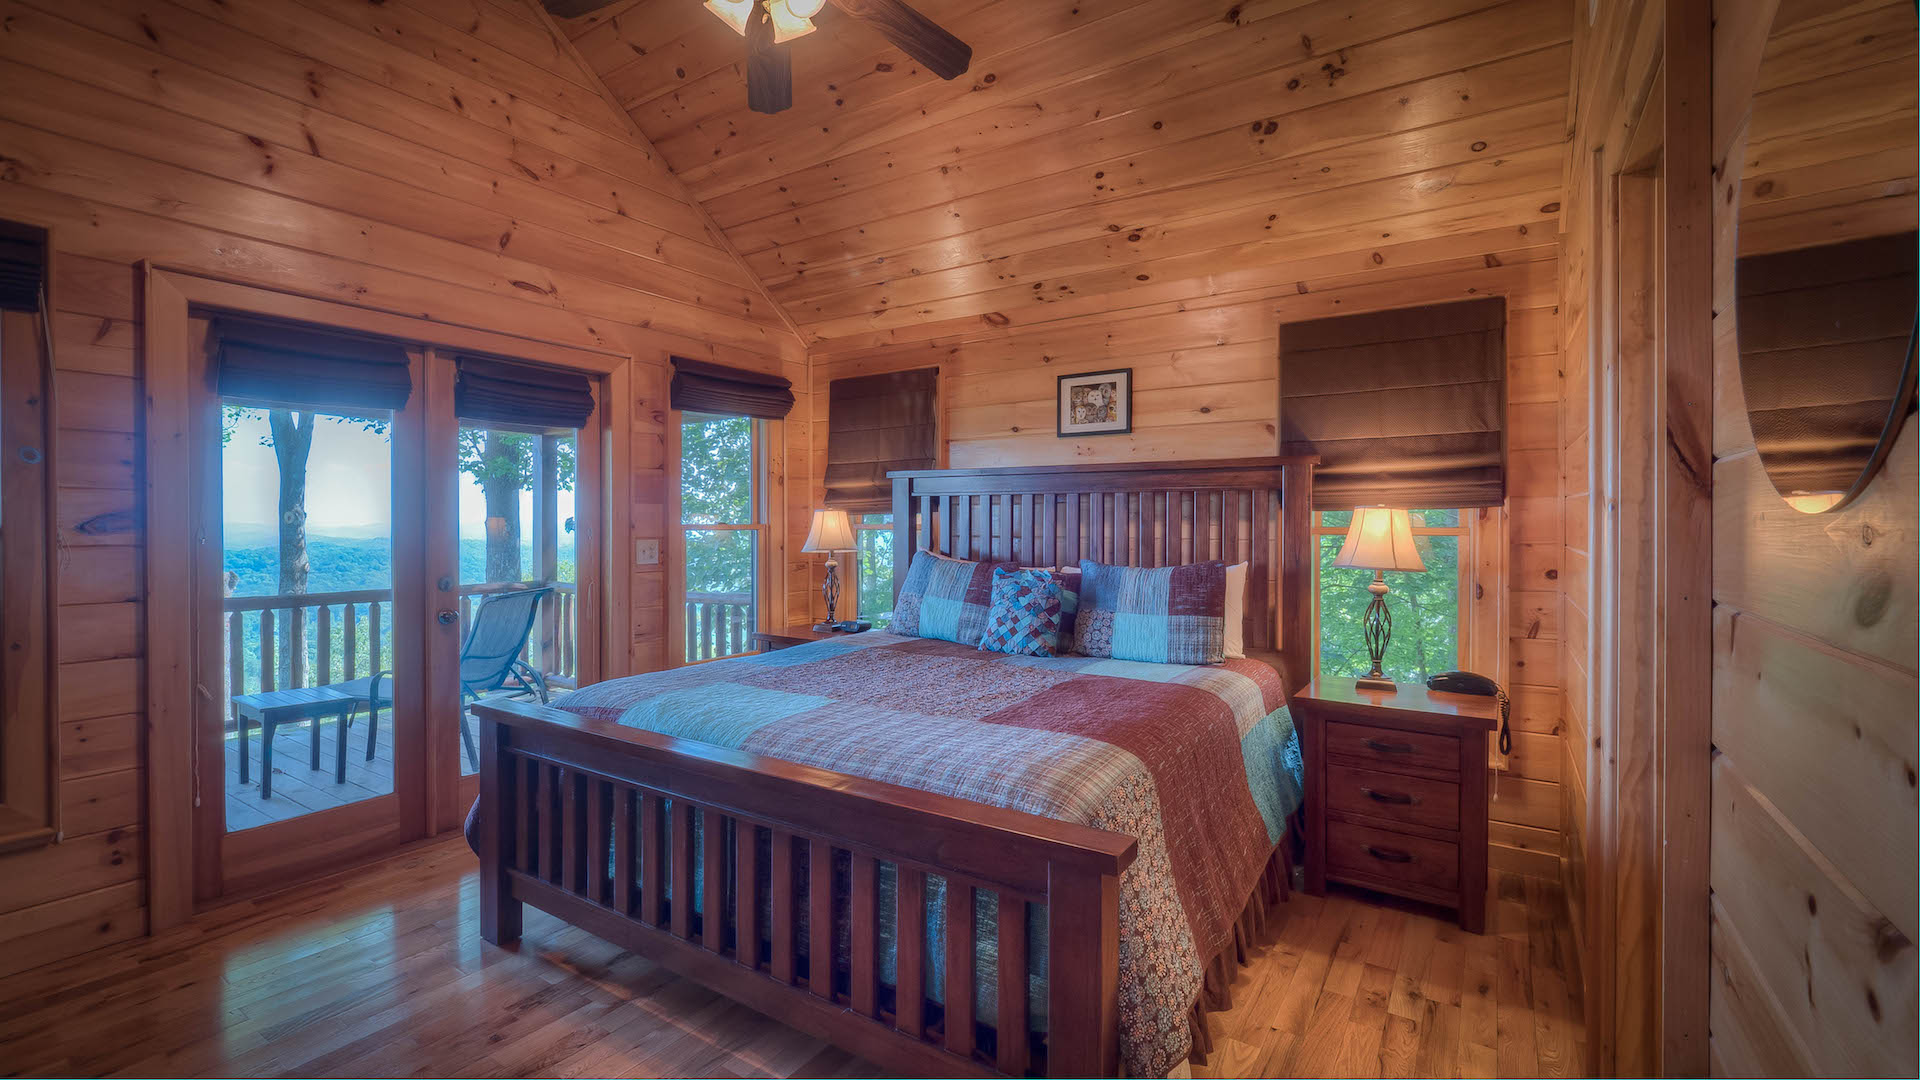 cheap north ga military cabin river rental deals on cabins helen with hot tub rentals georgia discount